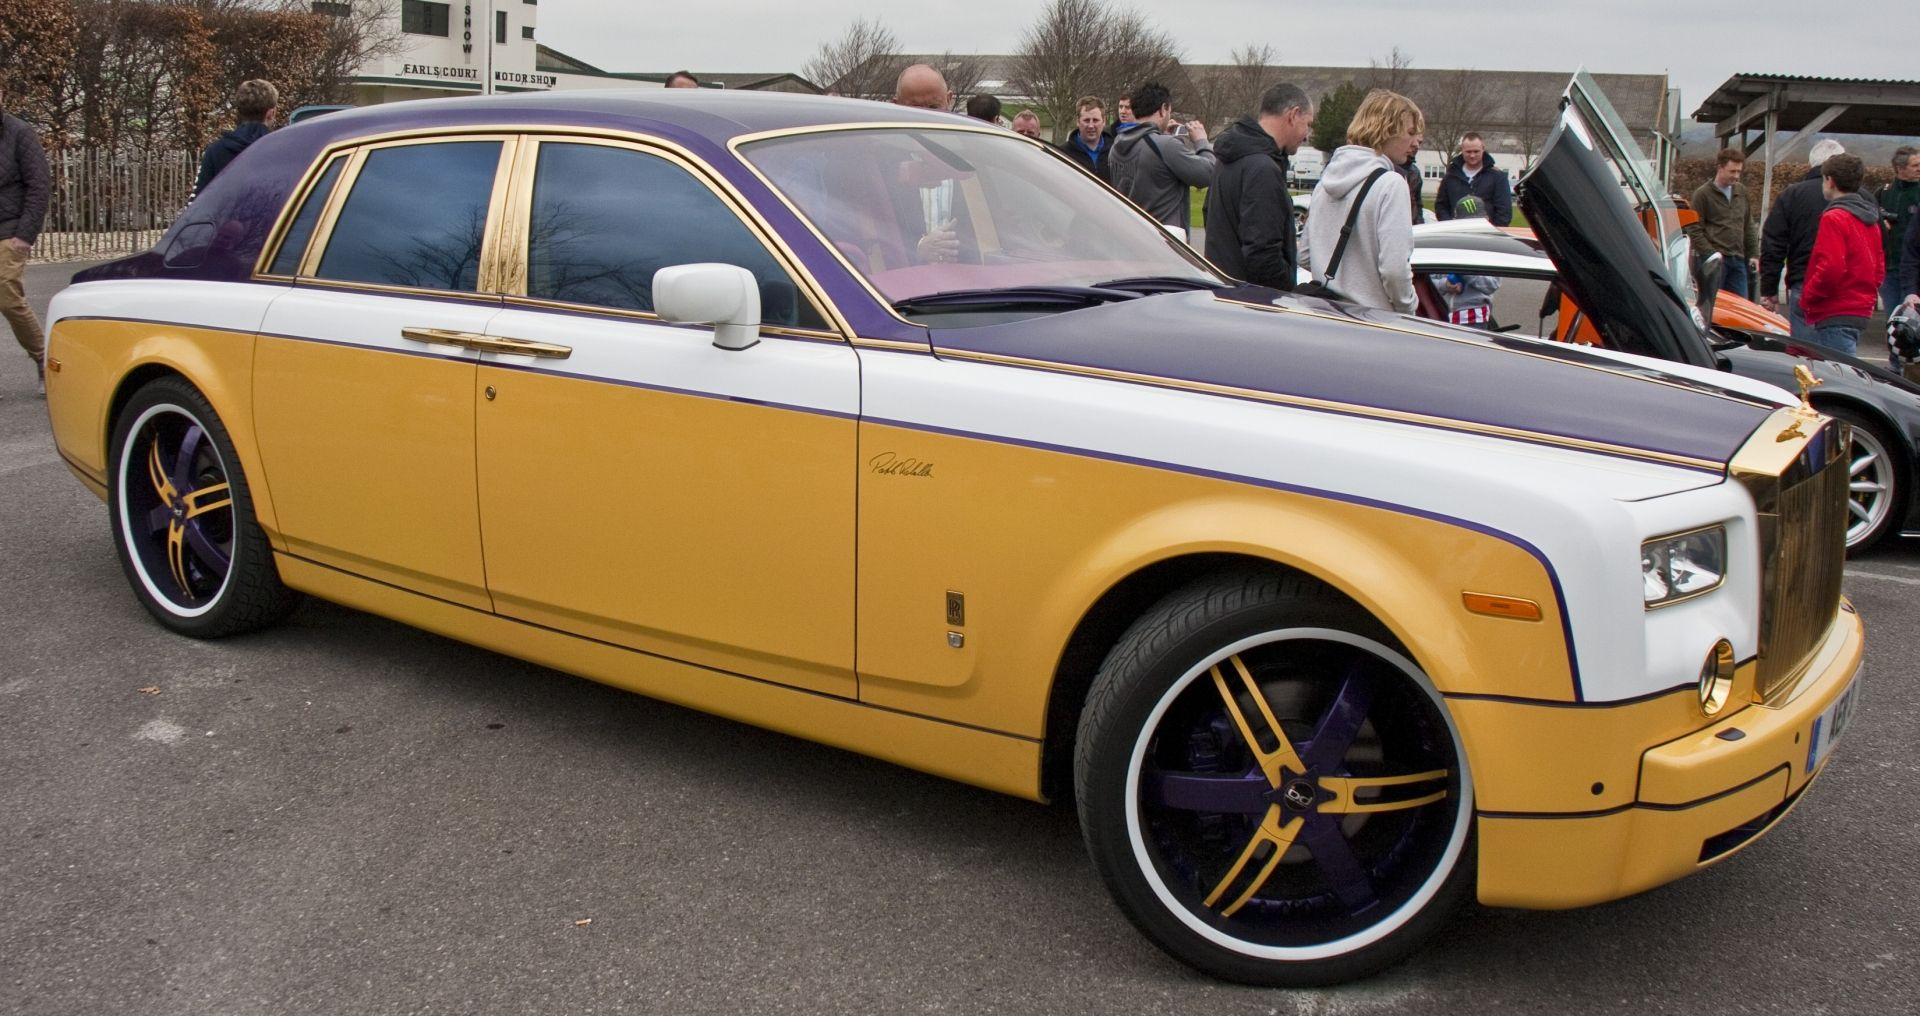 Rolls Royce Phantom By Pablo Rabiella Only Cars And Cars